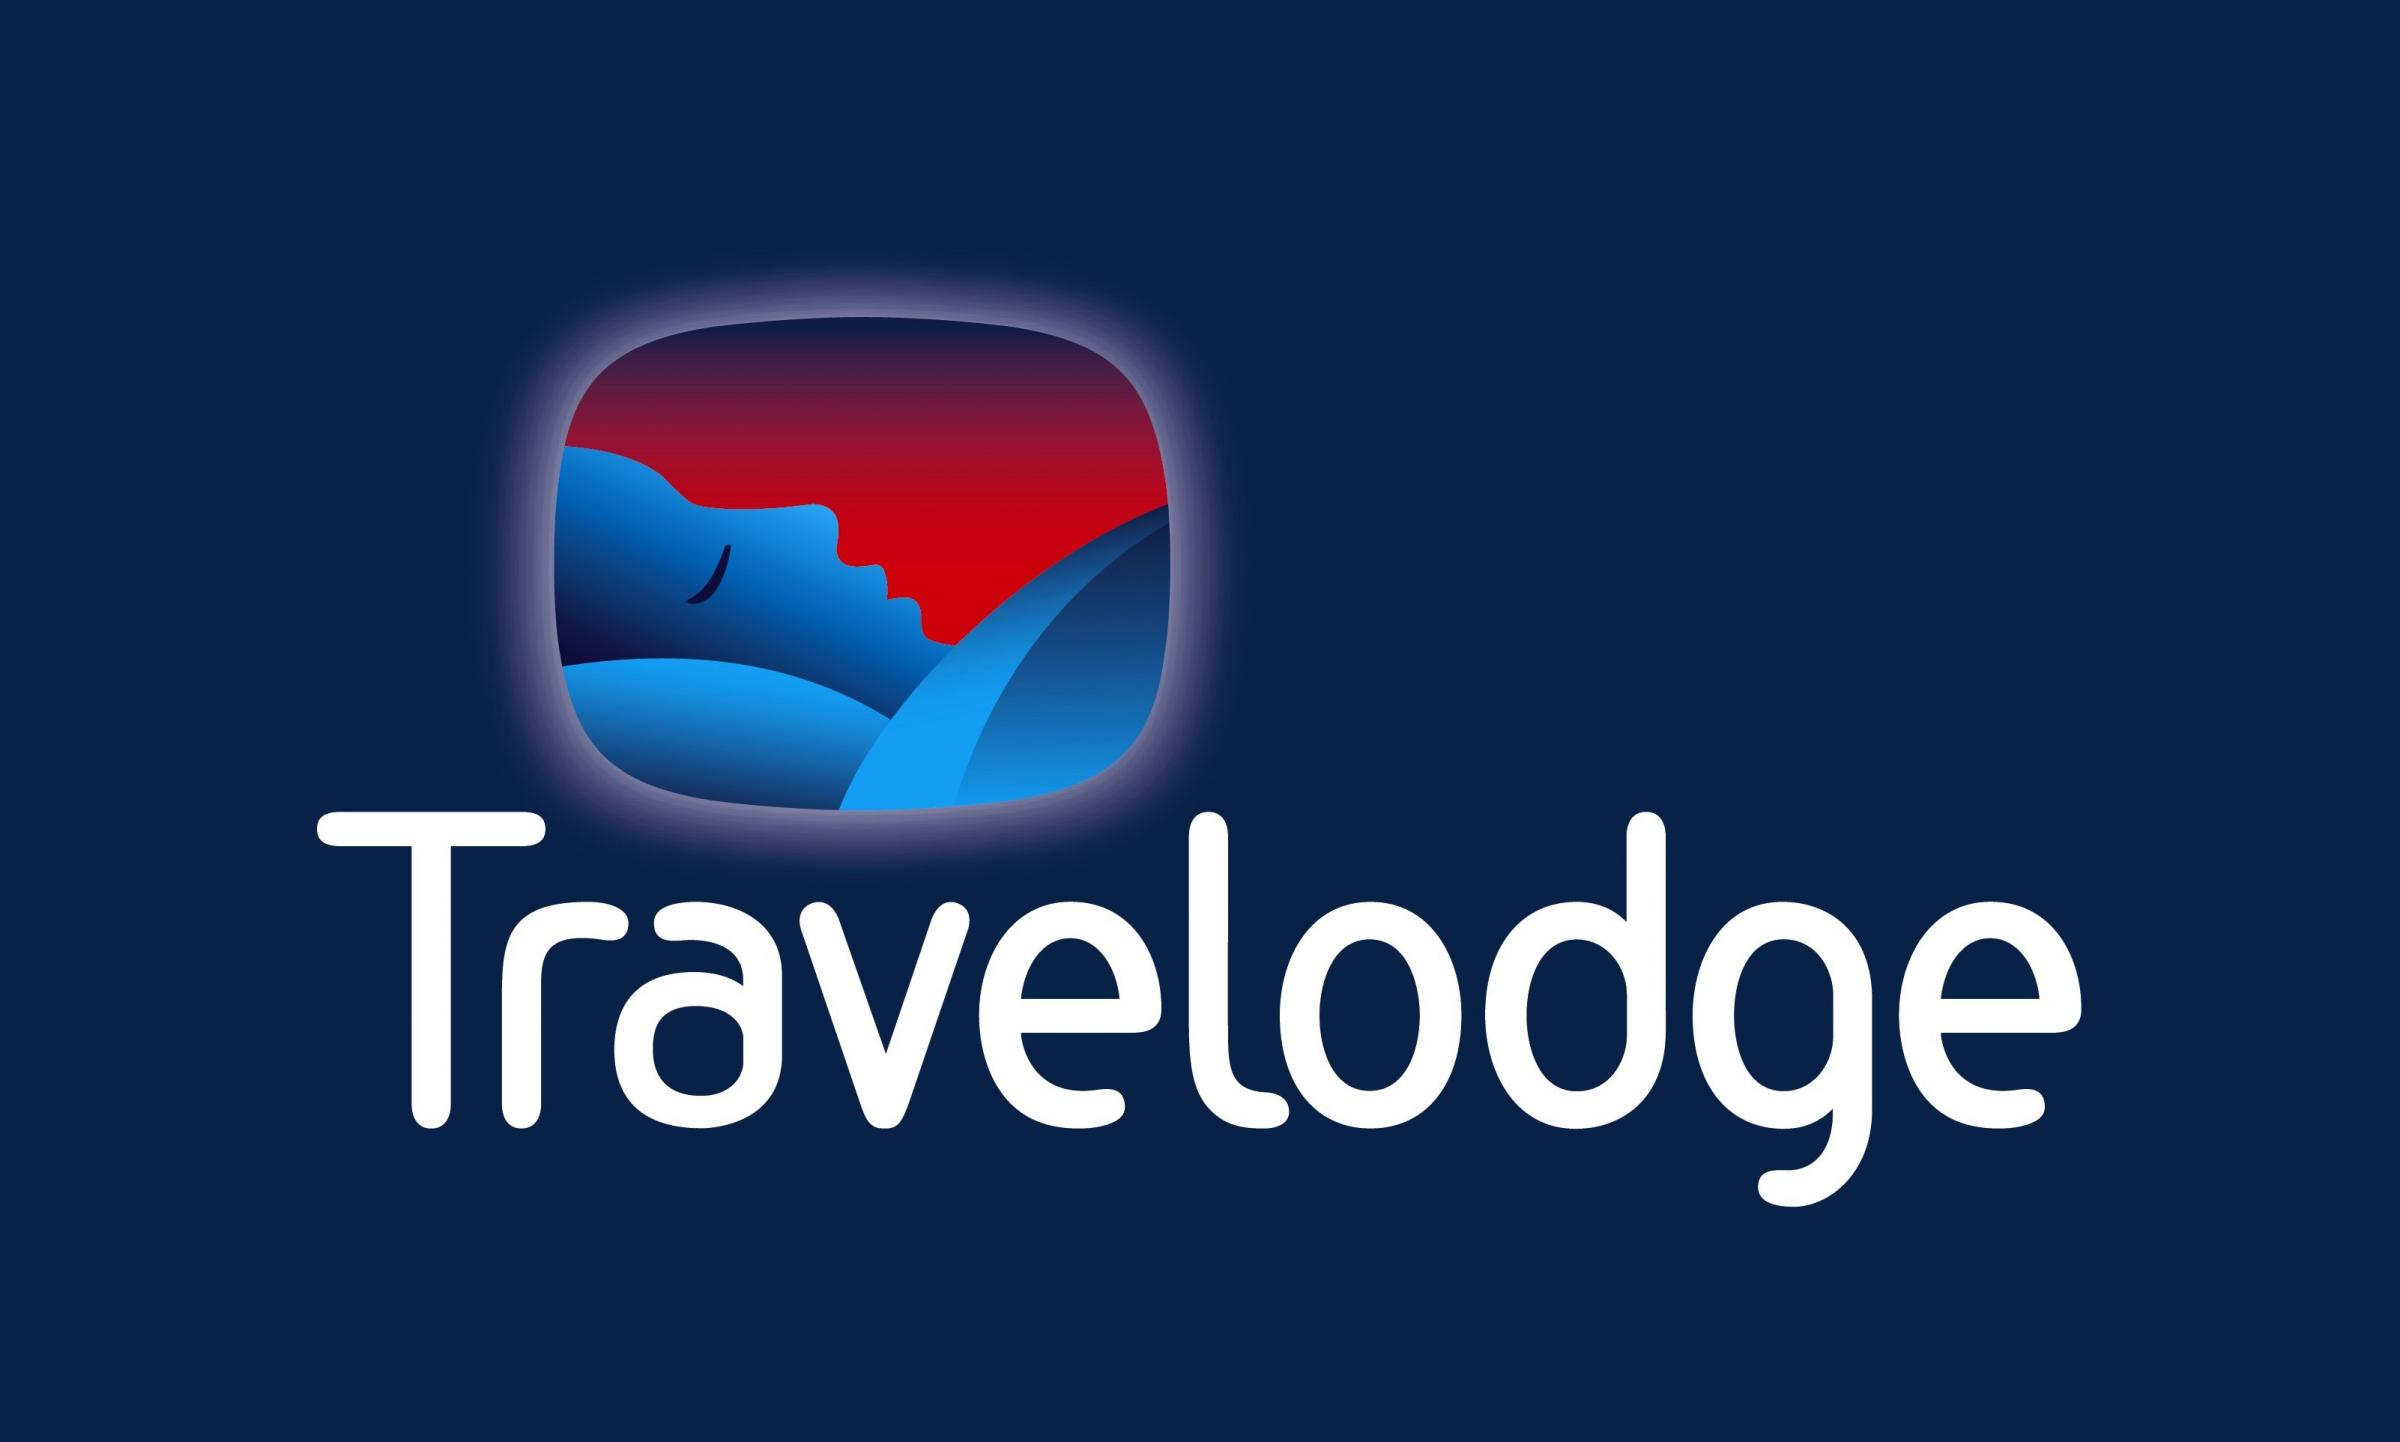 Travelodge Announces Plans For Hotel At The Mall Bromley From - Travelodge location map uk